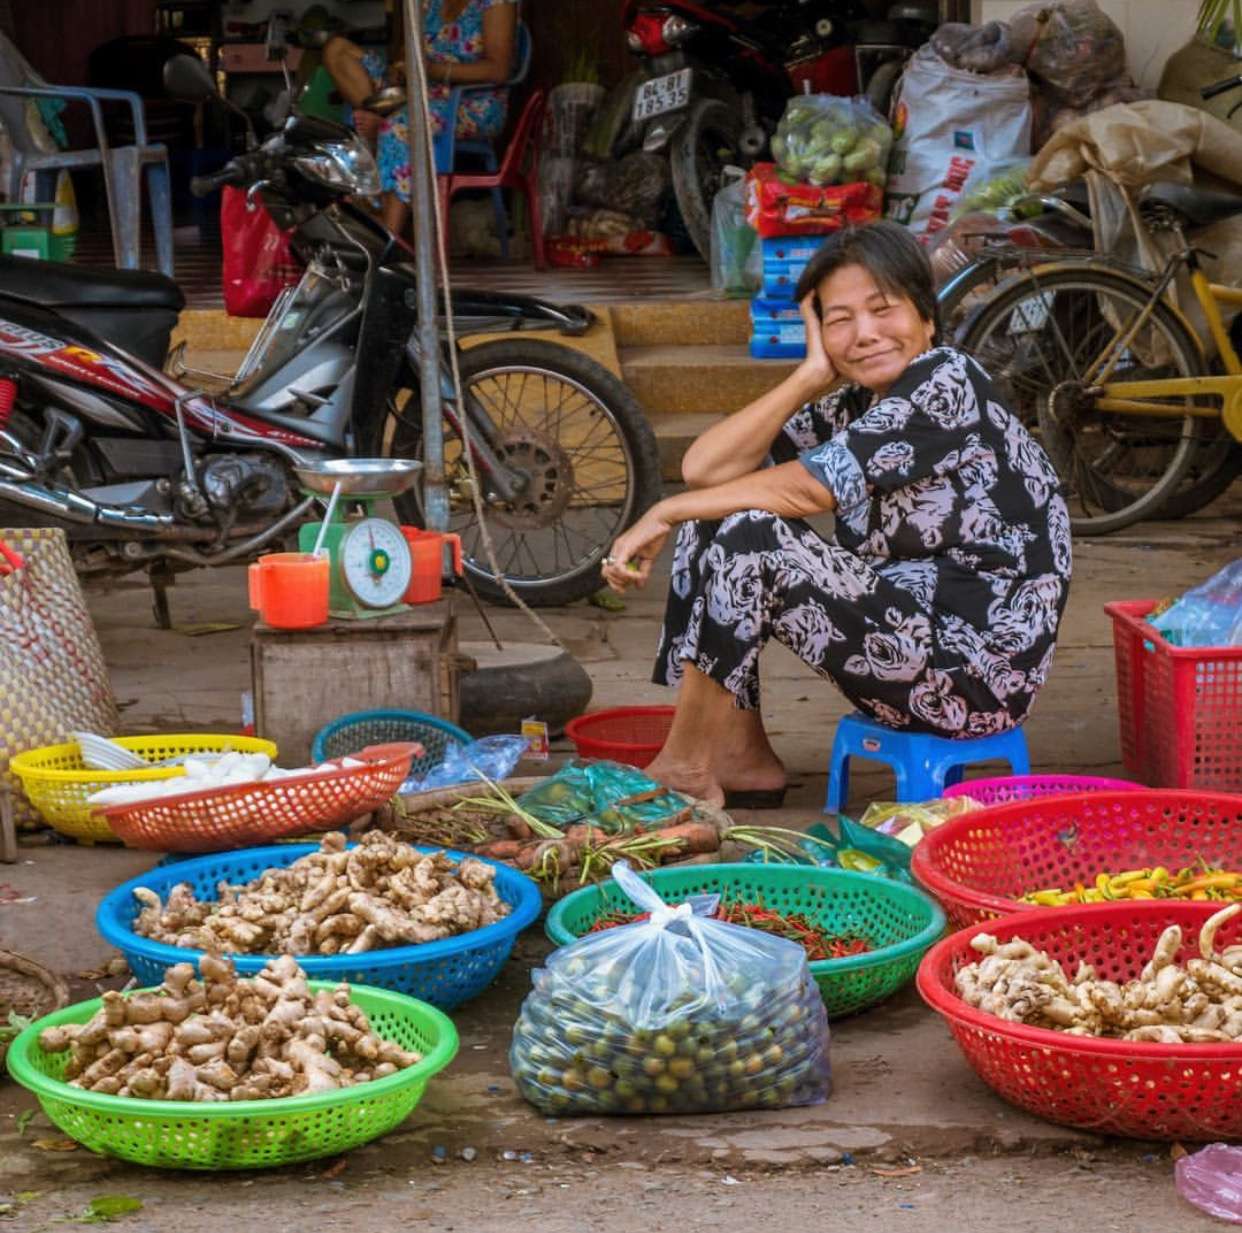 """""""After watching her neighboring vendors flag me down to photograph their grandchildren, their vegetables, their decapitated fish, and themselves, this woman gave me a gentle wave to snag my attention just as I was about to walk away,"""" Shannon says. """"More than any other city I visited in Vietnam, the people in Tra Vinh were delighted to have a foreigner at the market wielding a big smile, friendly curiosity, and a discreet camera.  Photo by Shannon O'Donnell ."""